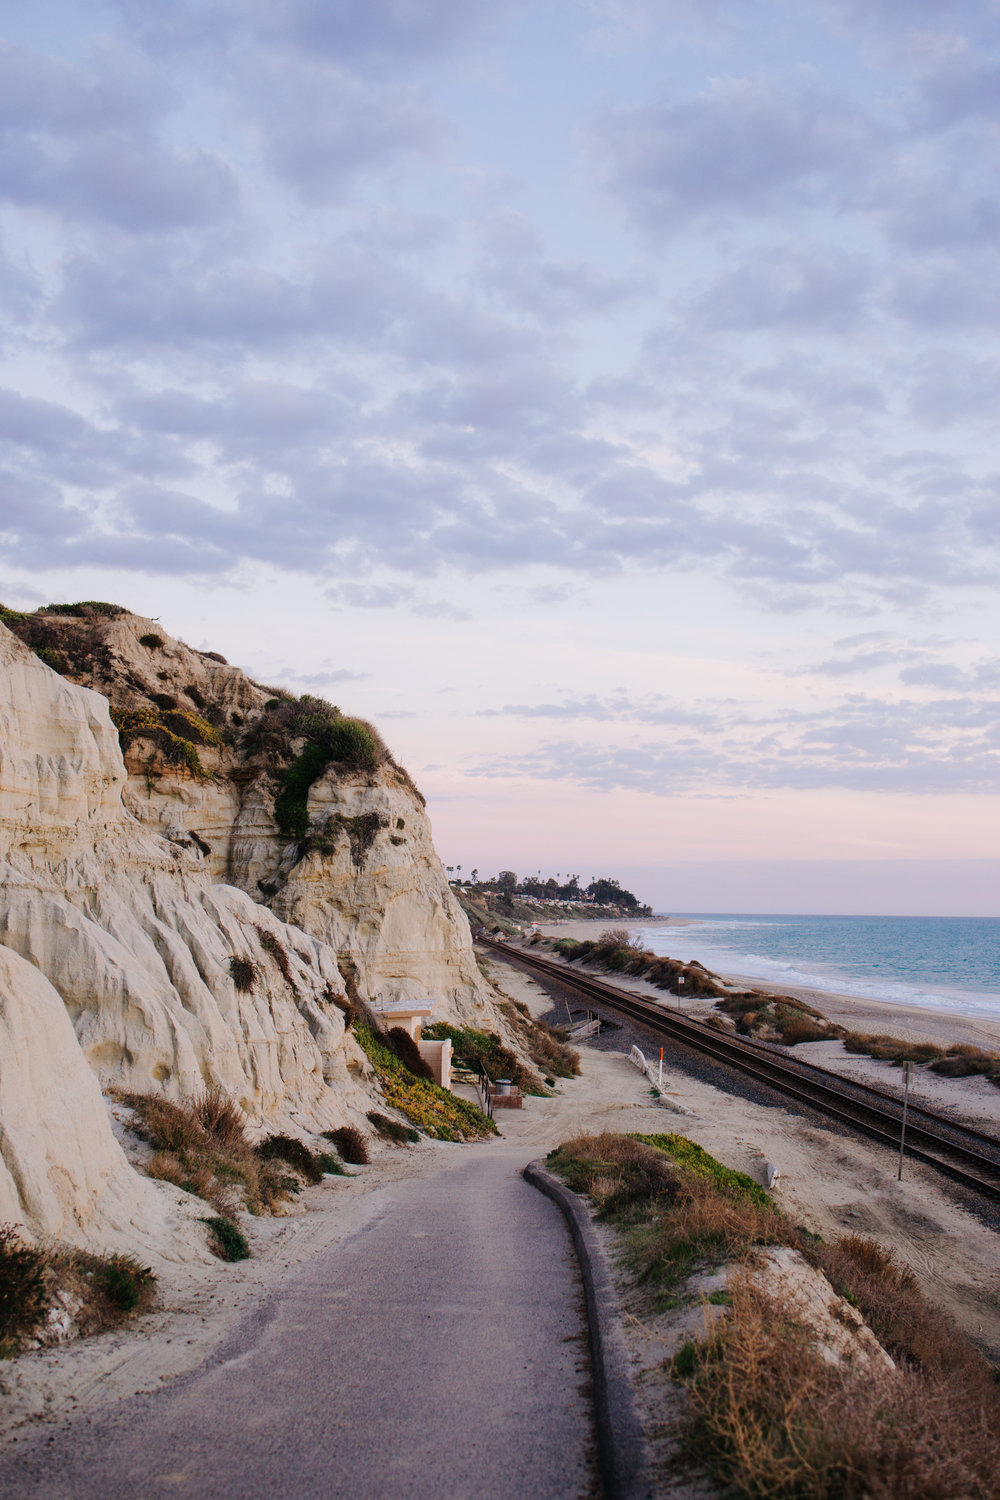 Cliffs and Train Tracks at San Clemente State Beach at Dusk